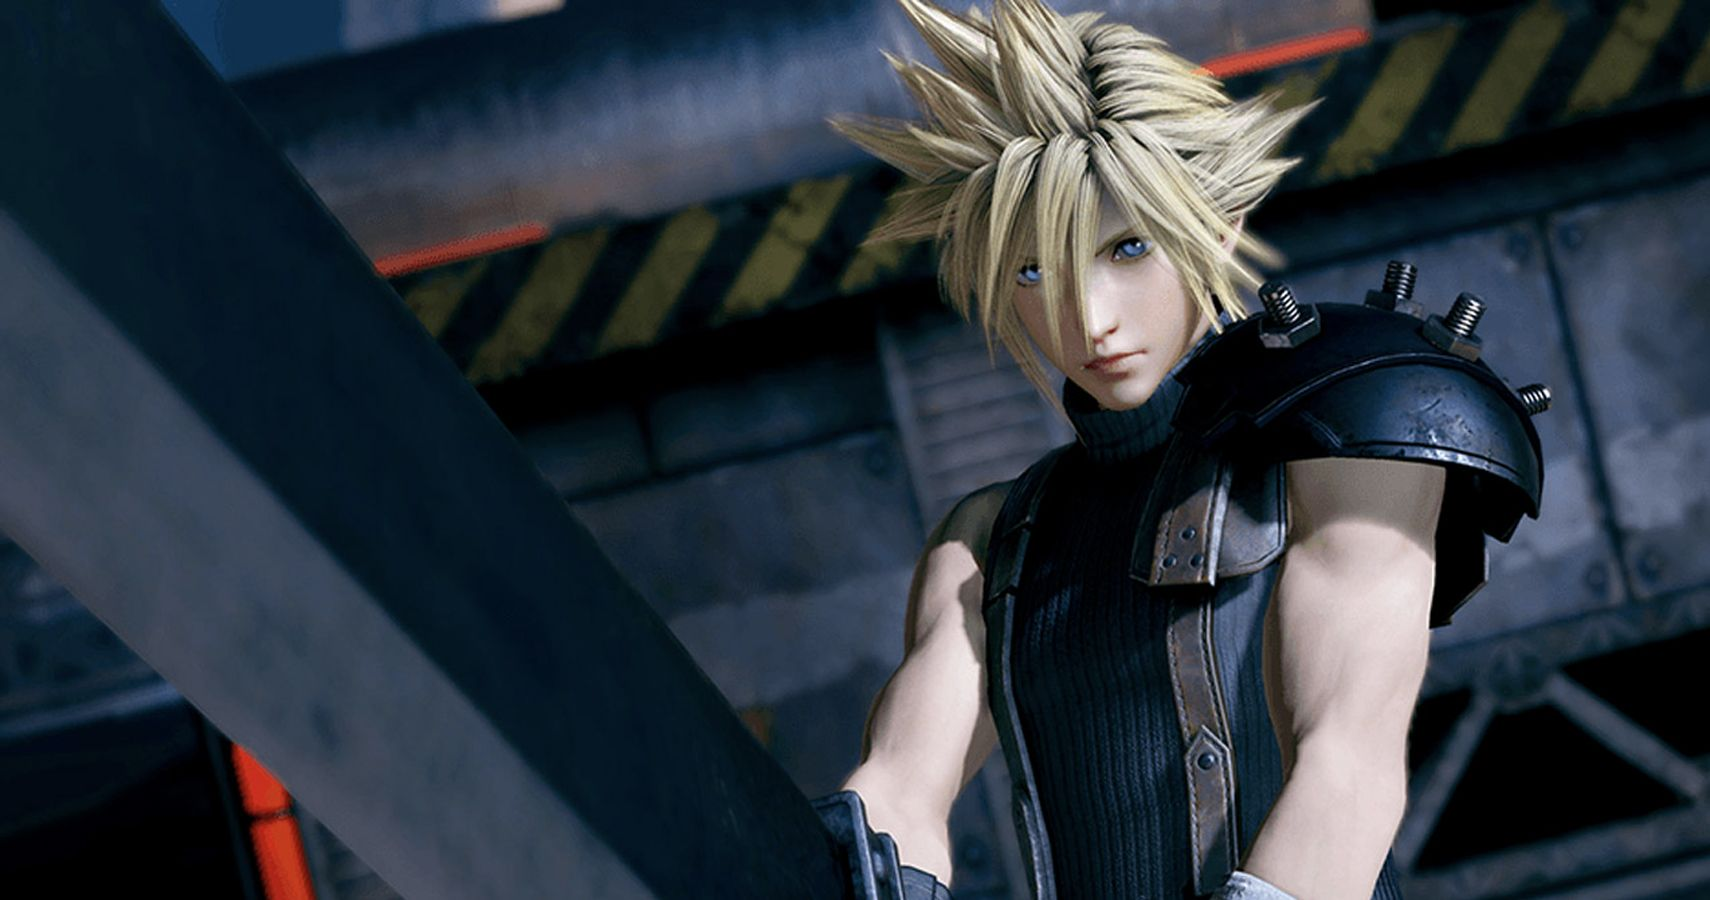 Final Fantasy VII: 15 Things That NEED To Be Cut From The Remake